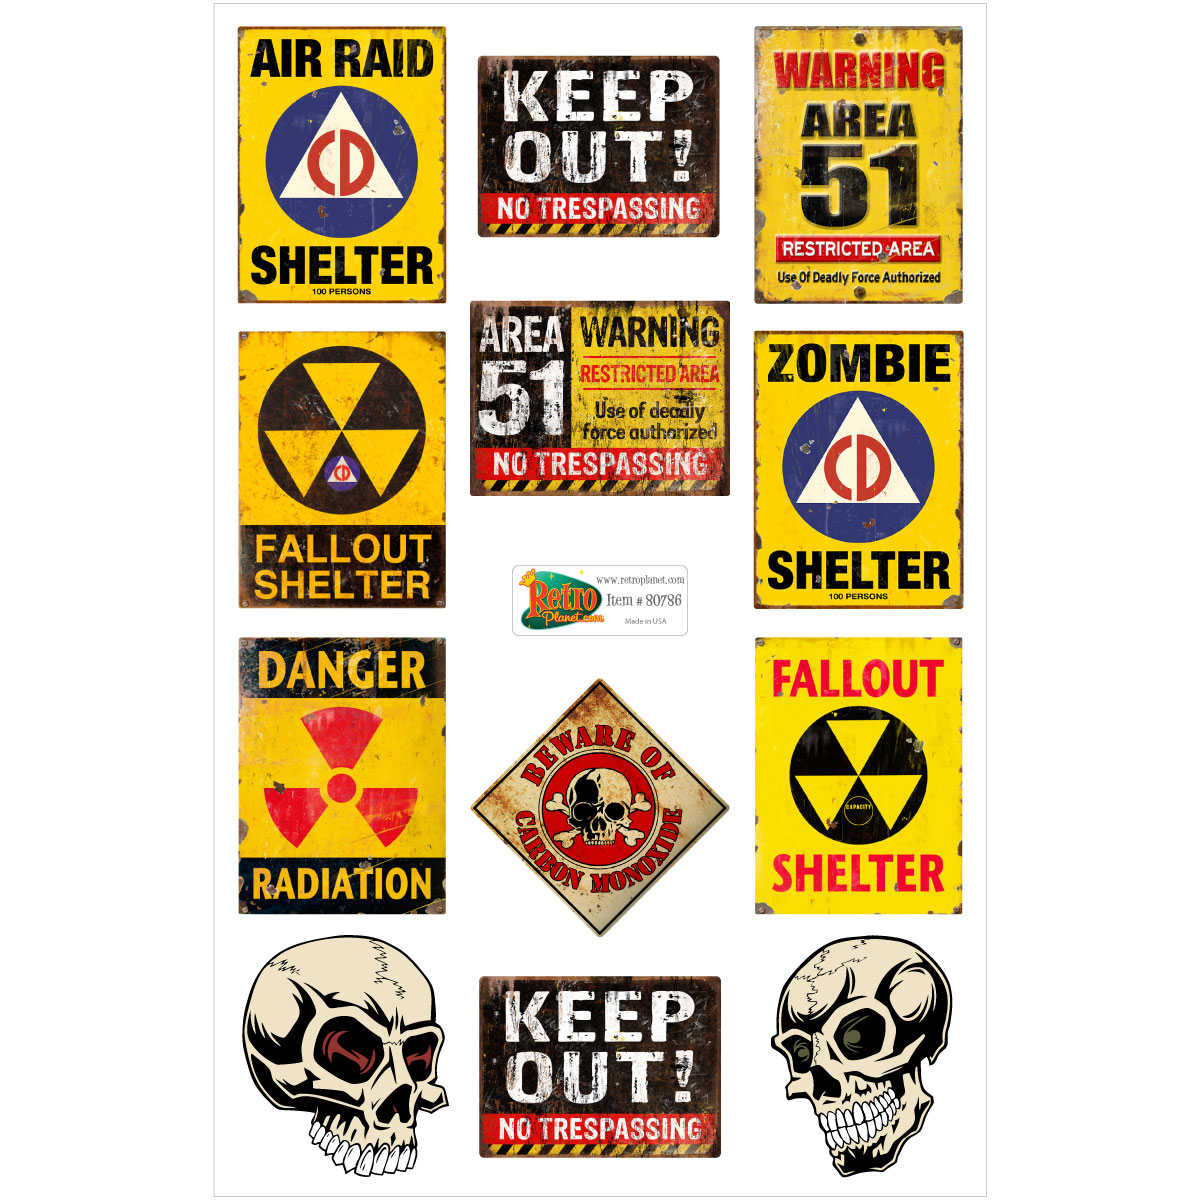 Area 51 Fallout Shelter Warning Signs Vinyl Sticker Sheet